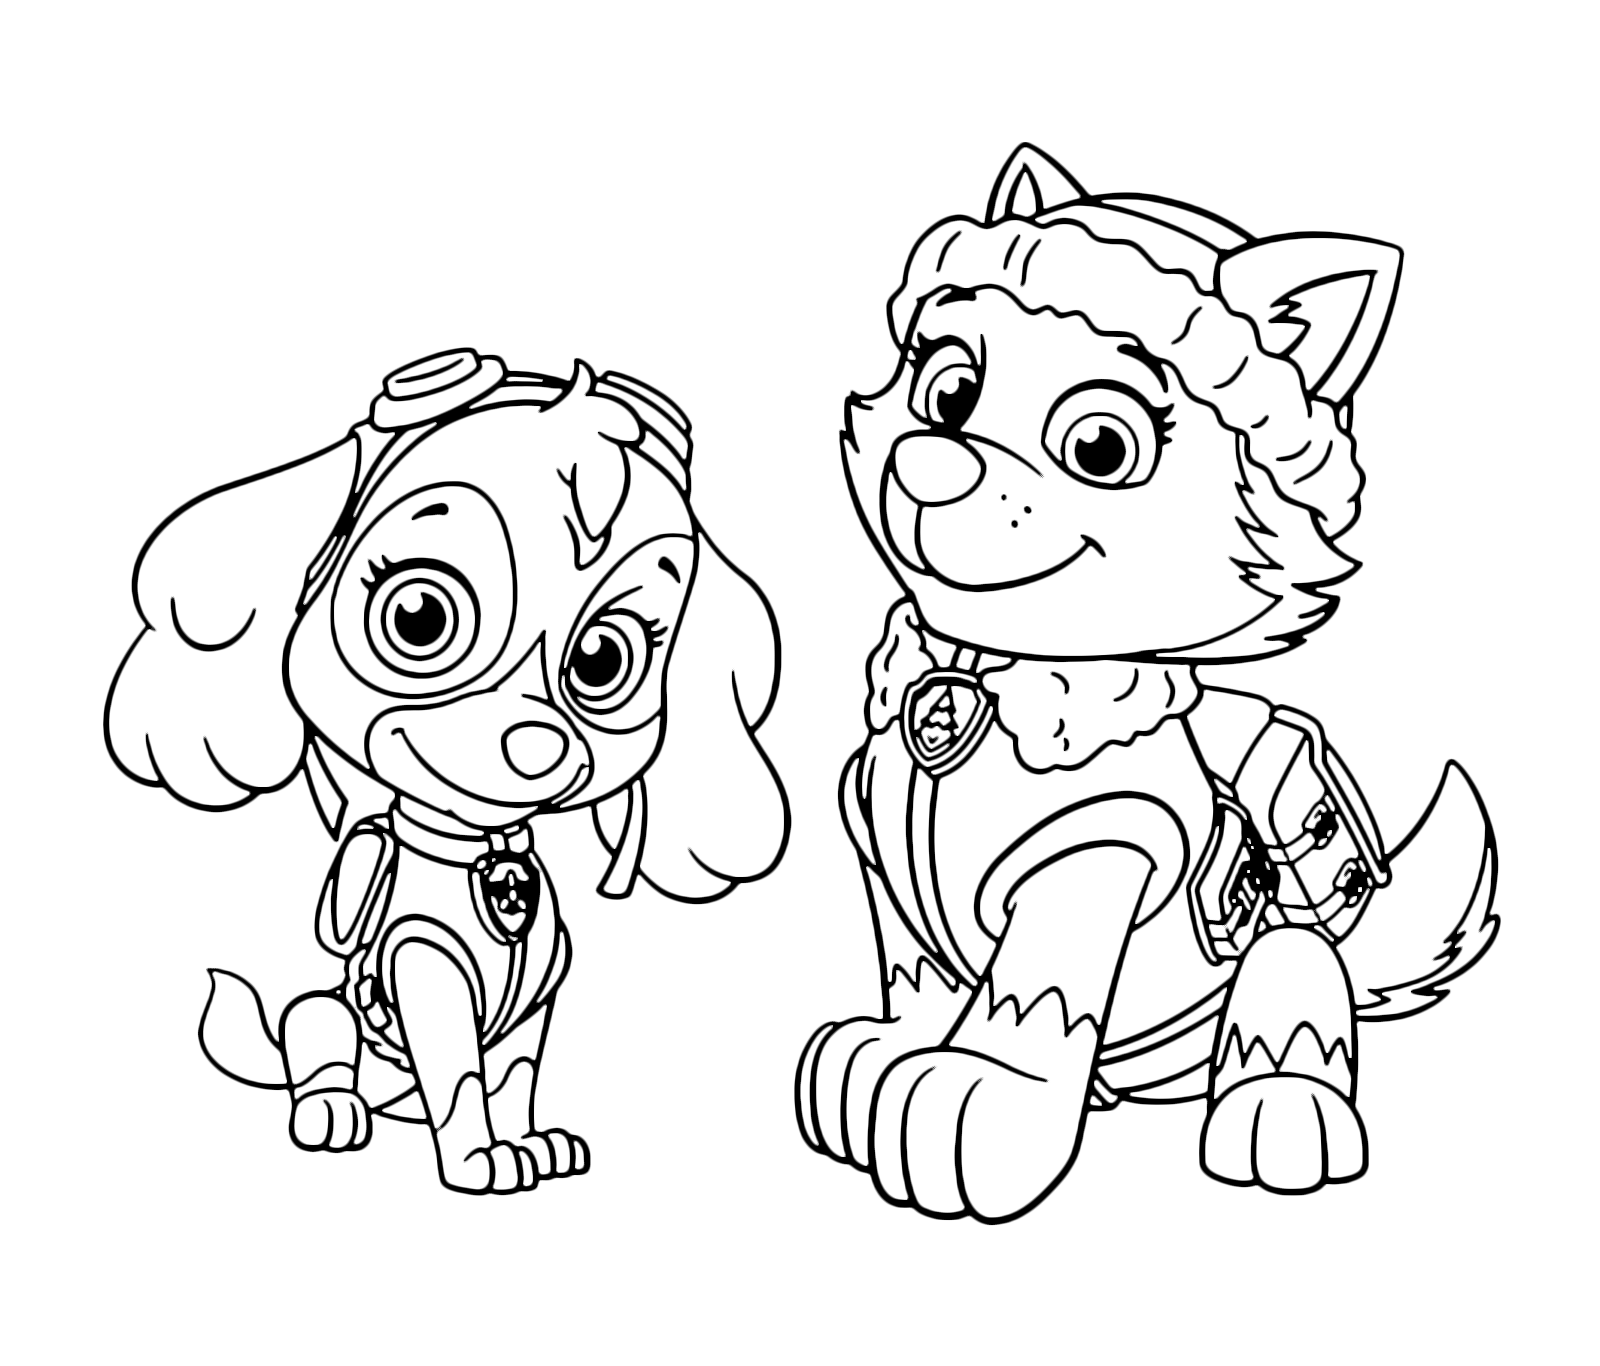 coloring images paw patrol coloring images paw patrol paw coloring images patrol